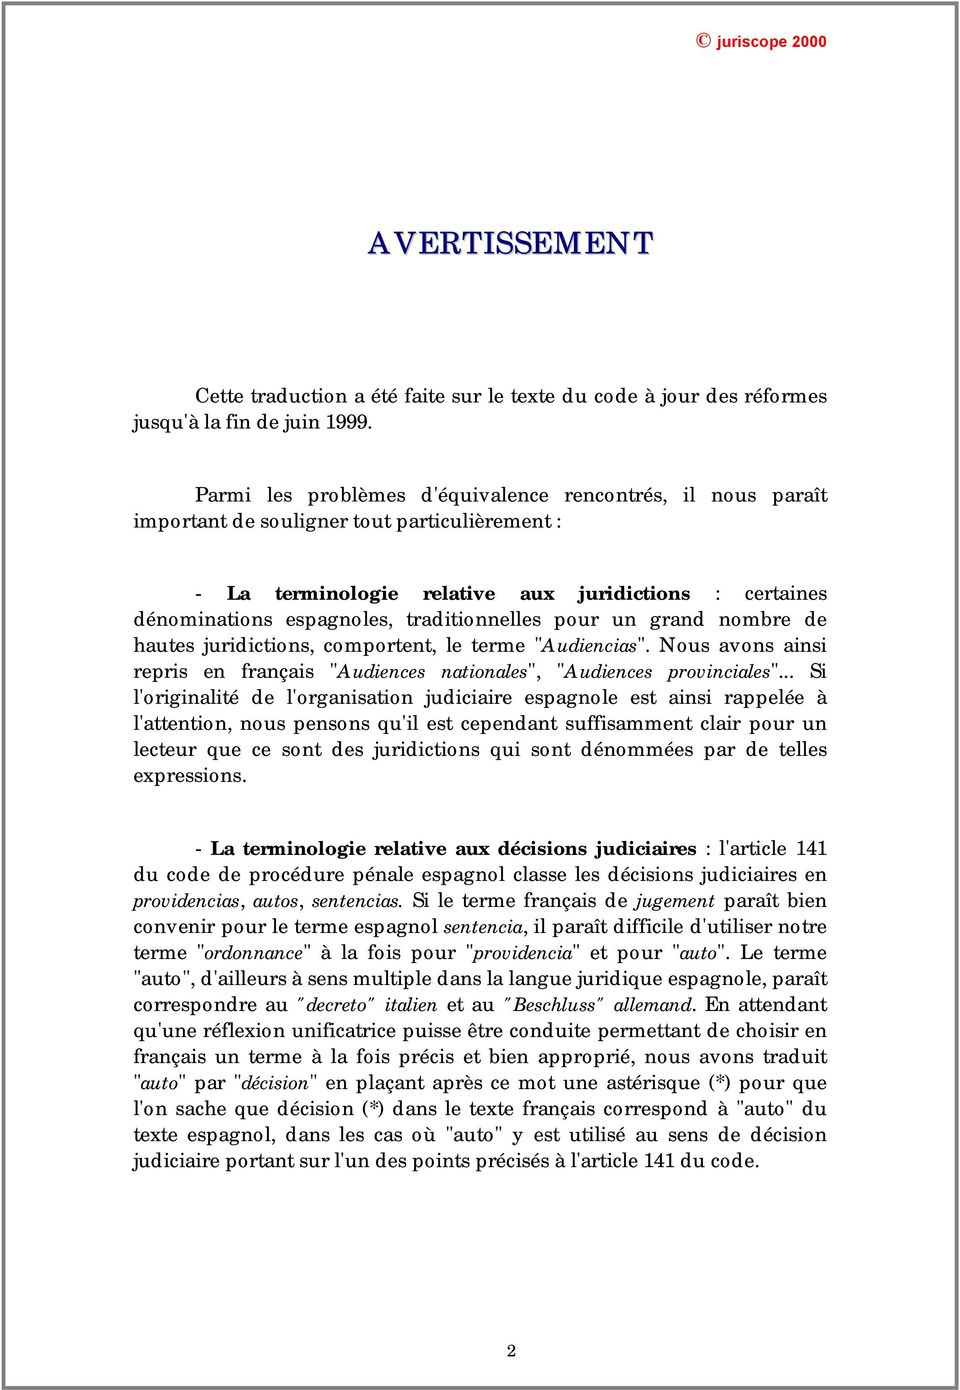 "traditionnelles pour un grand nombre de hautes juridictions, comportent, le terme ""Audiencias"". Nous avons ainsi repris en français ""Audiences nationales"", ""Audiences provinciales""."